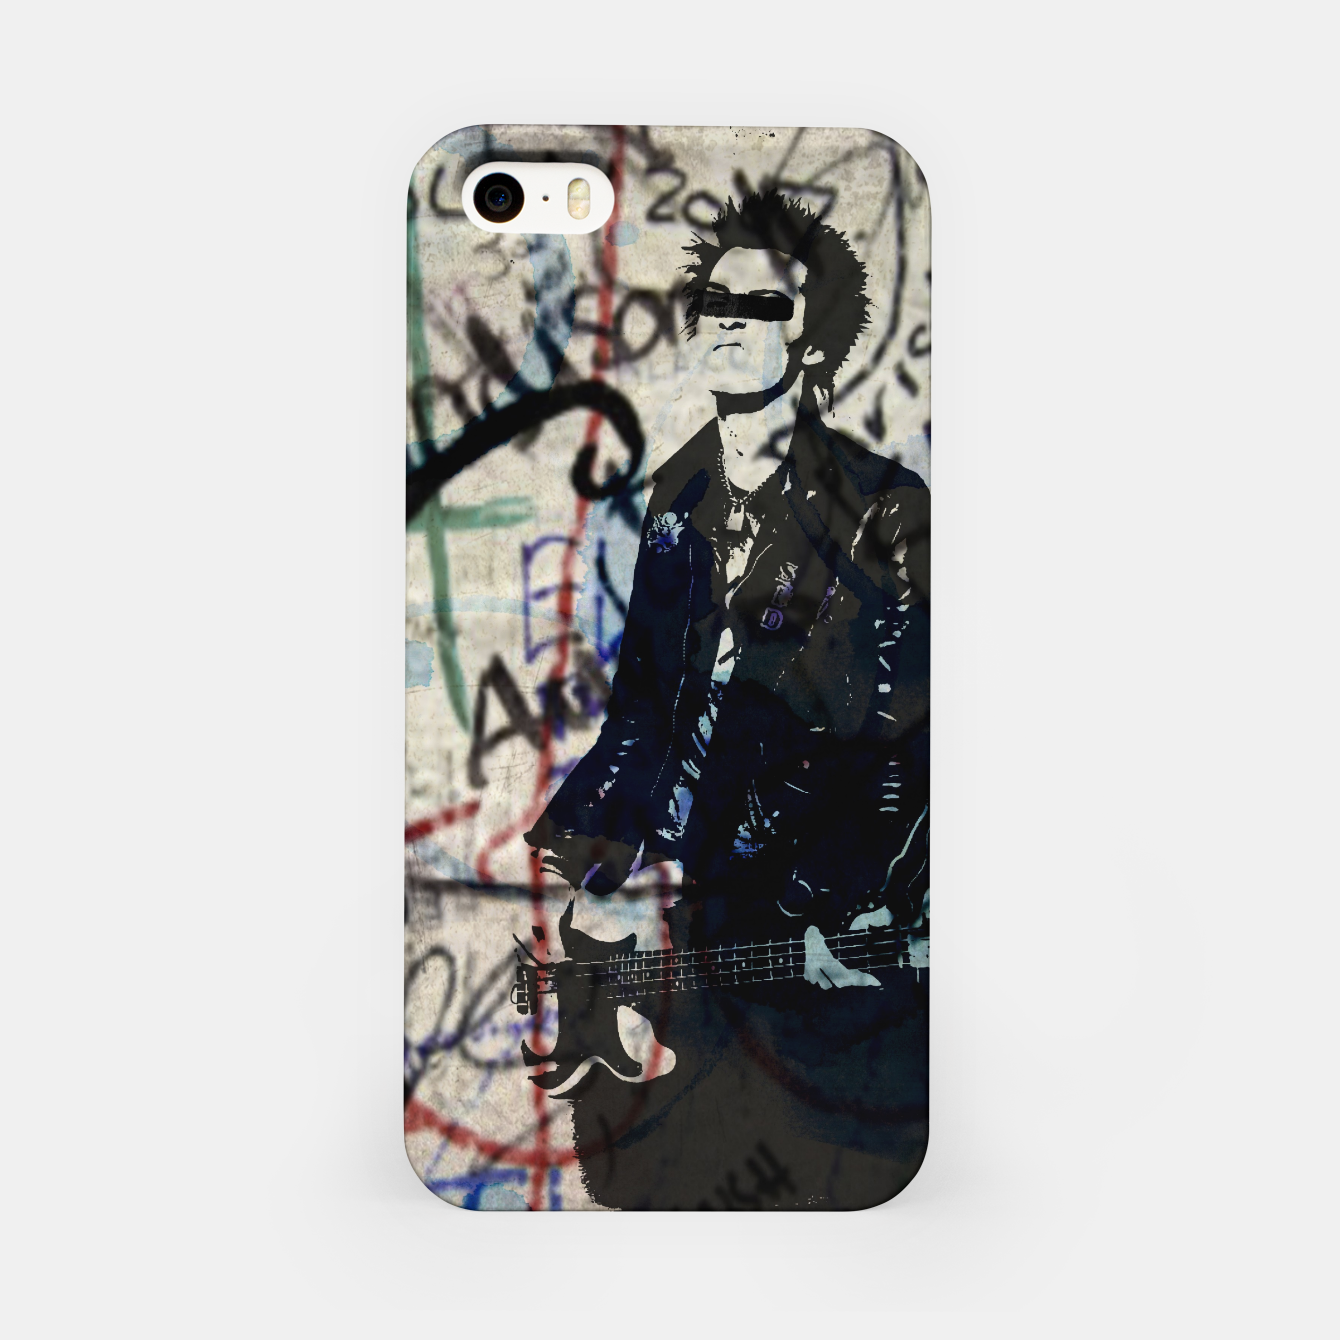 Foto Graffitied - Punk Vicious iPhone Case - Live Heroes